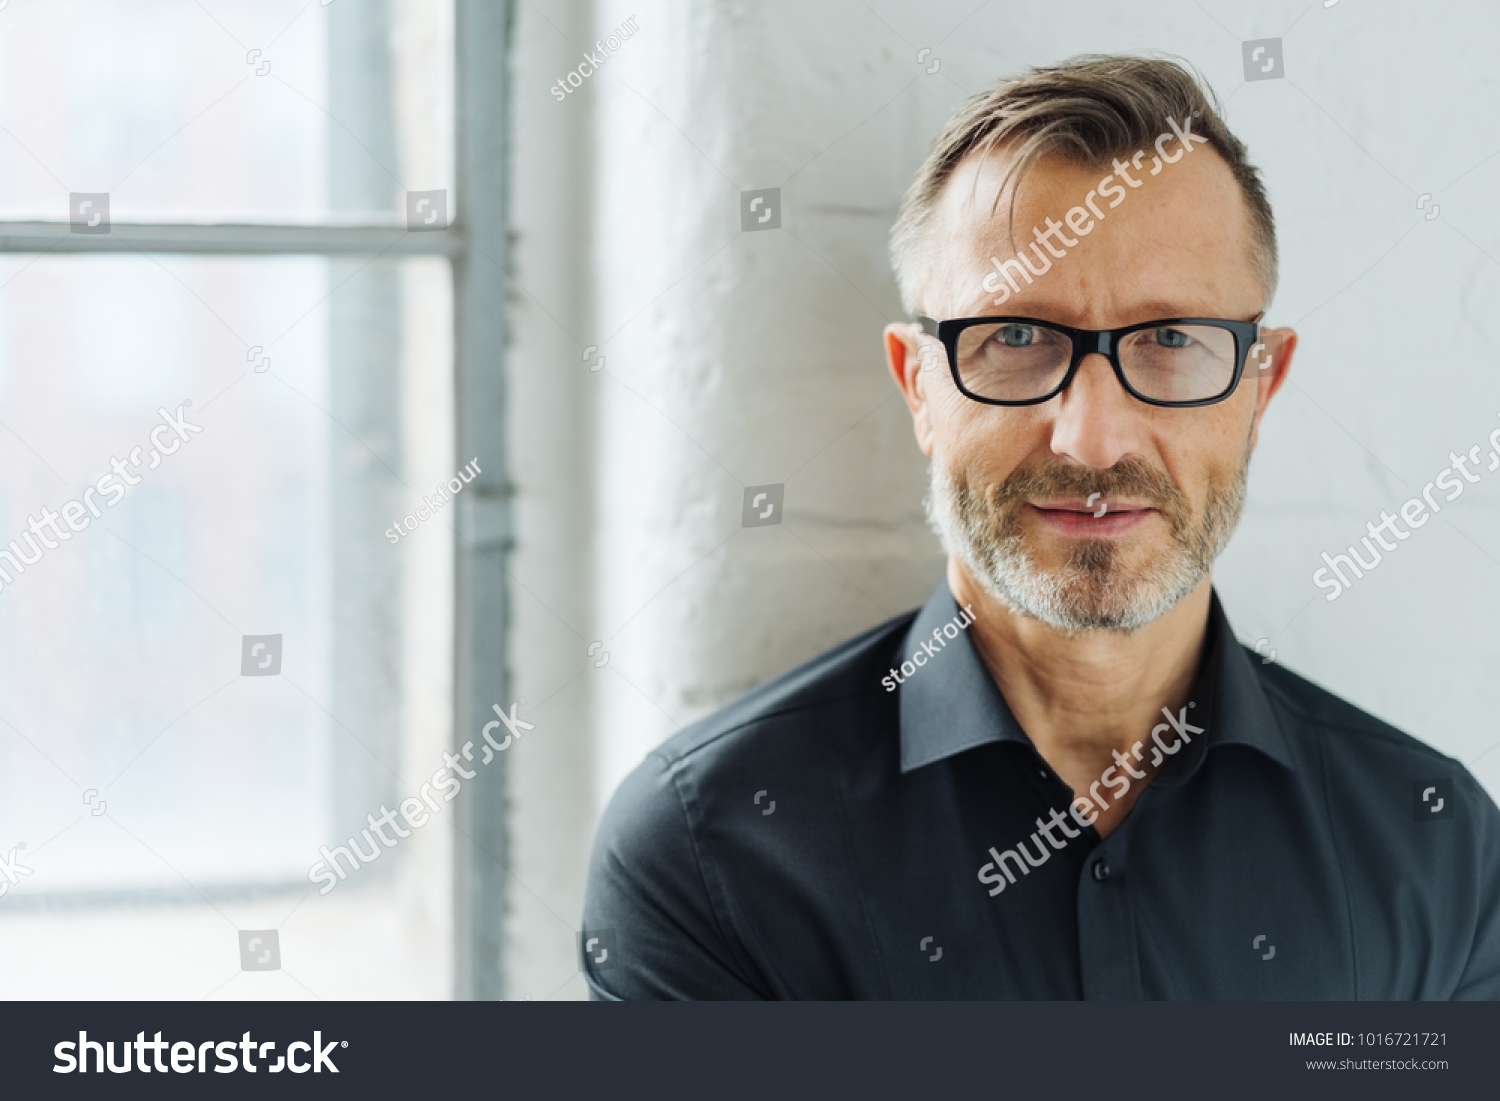 Bearded middle-aged man wearing glasses looking at camera with a serious expression in a close up head and shoulders portrait #1016721721